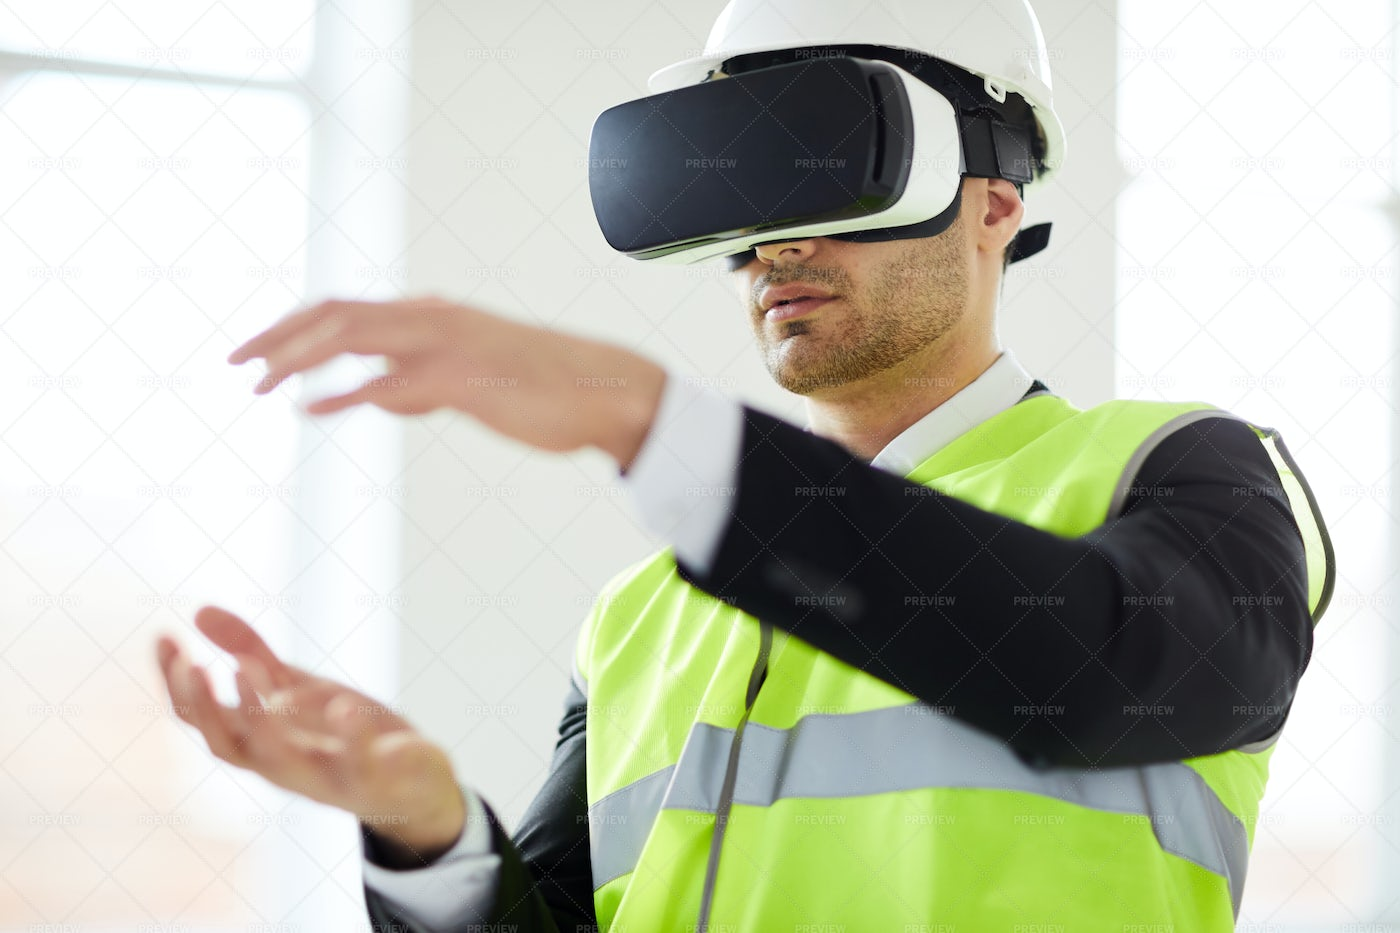 Engineering In VR: Stock Photos